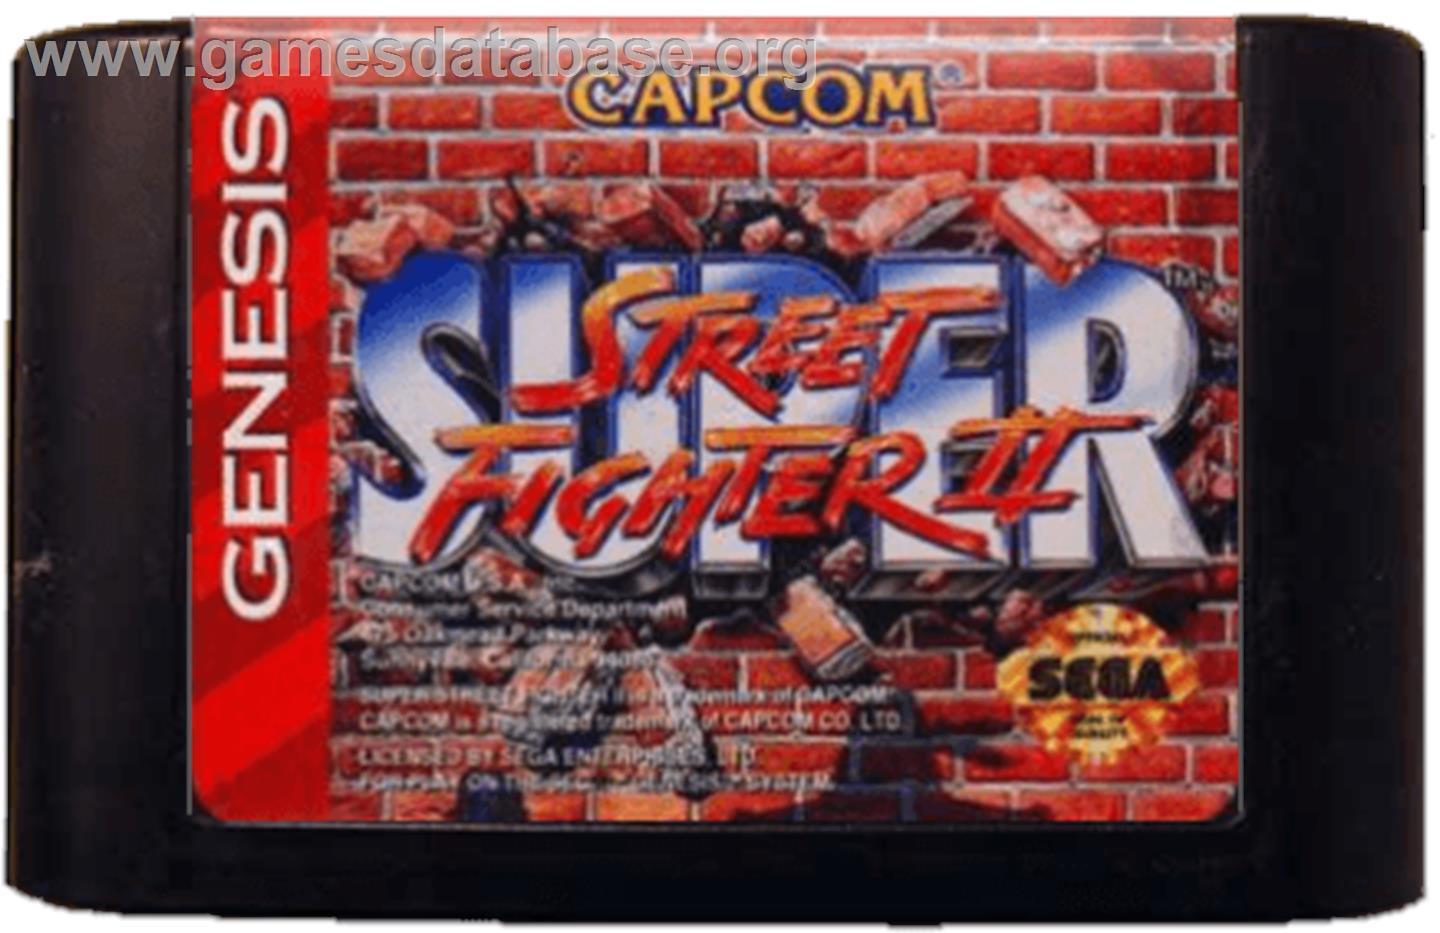 Cartridge artwork for Super Street Fighter II - The New Challengers on